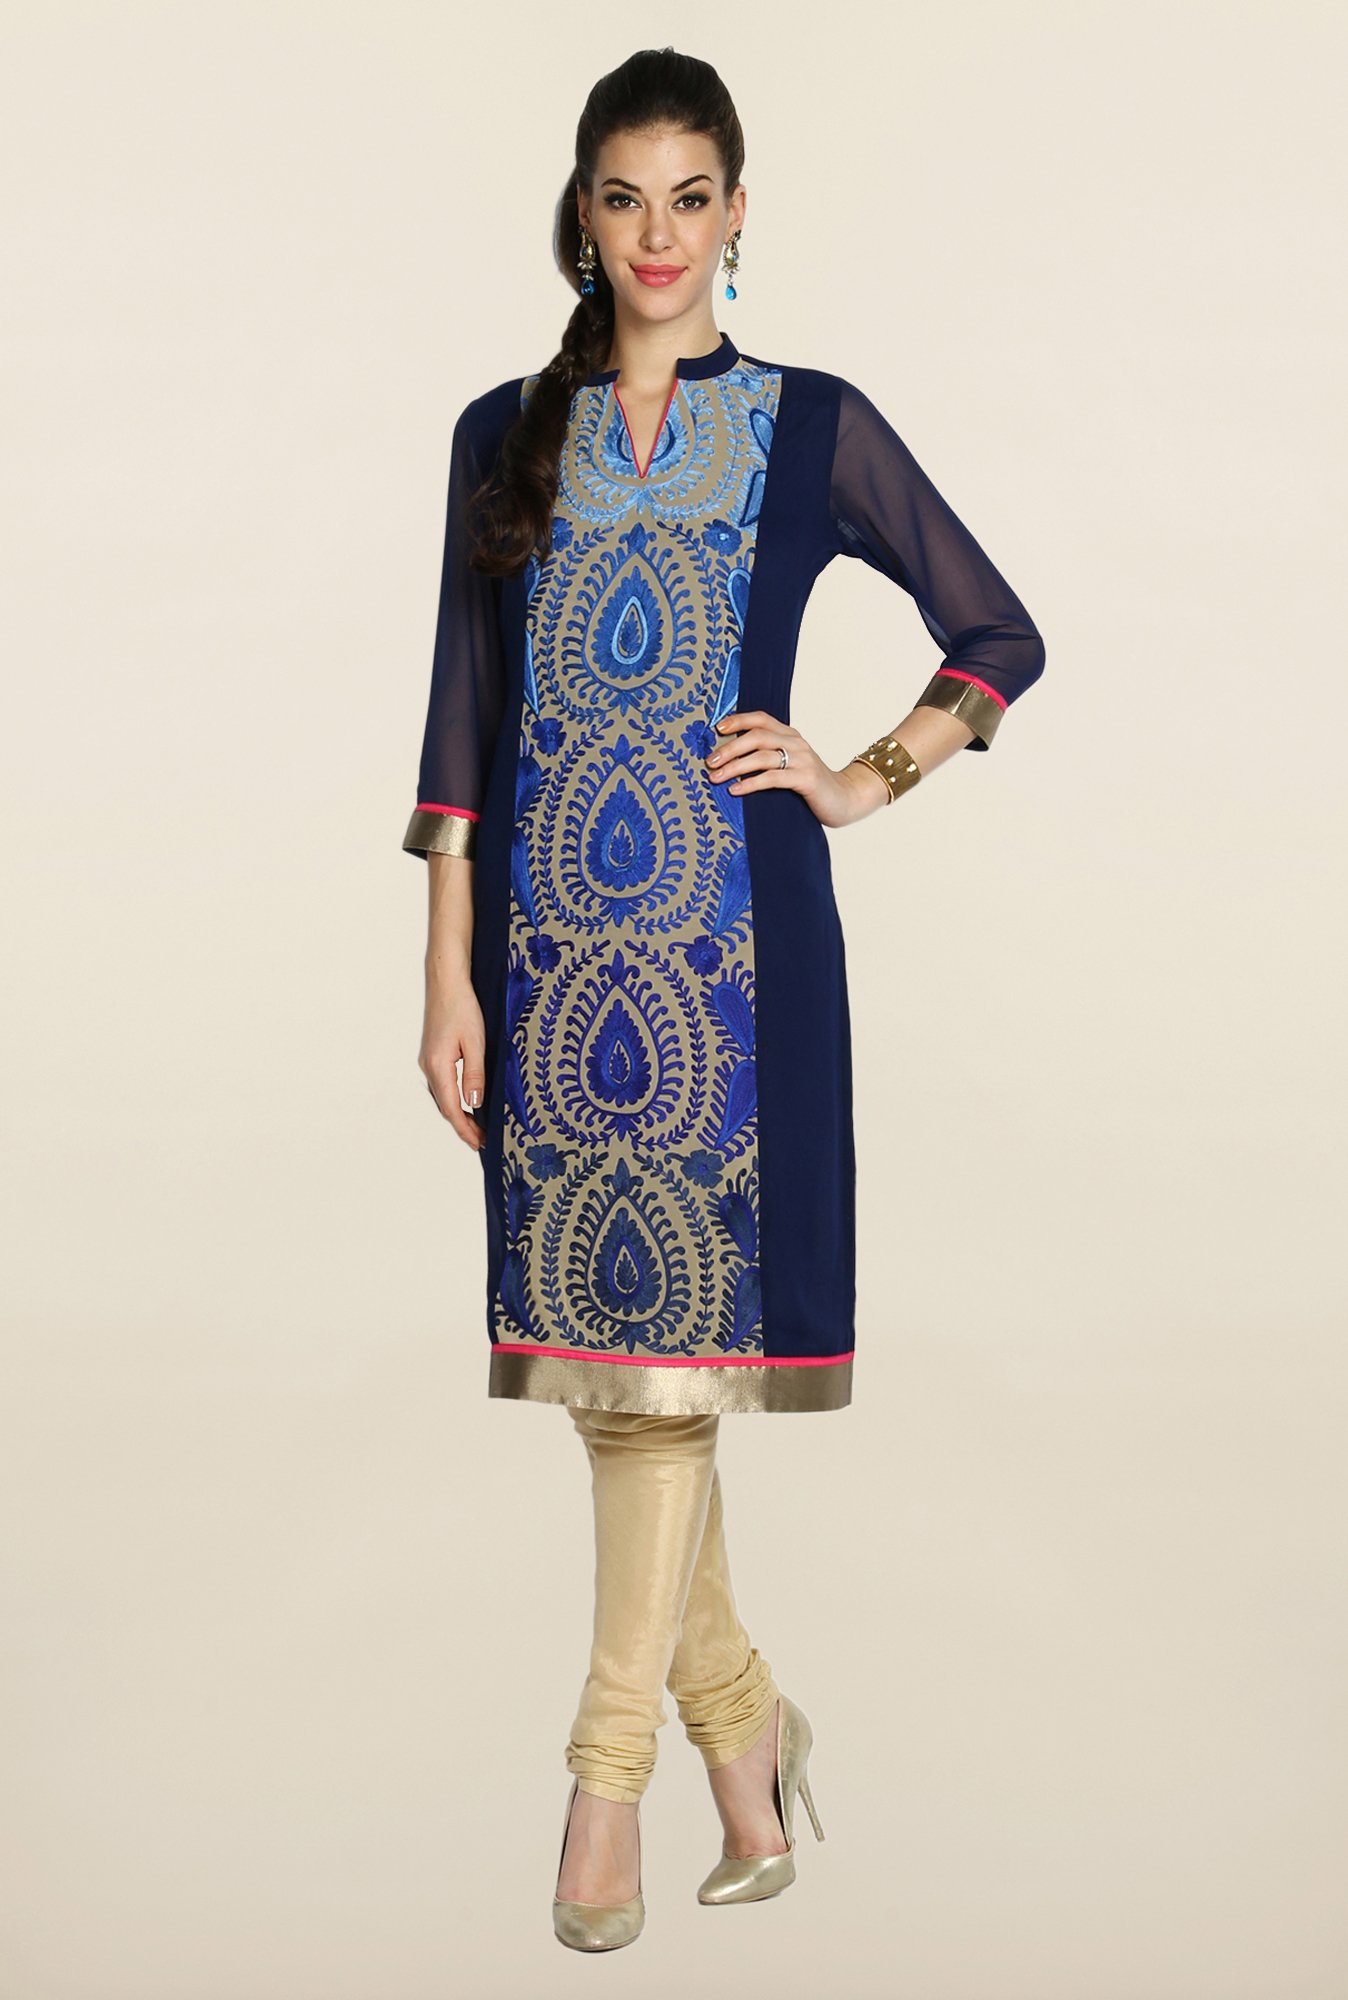 Soch Royal Blue & Beige Embroidered Suit Set